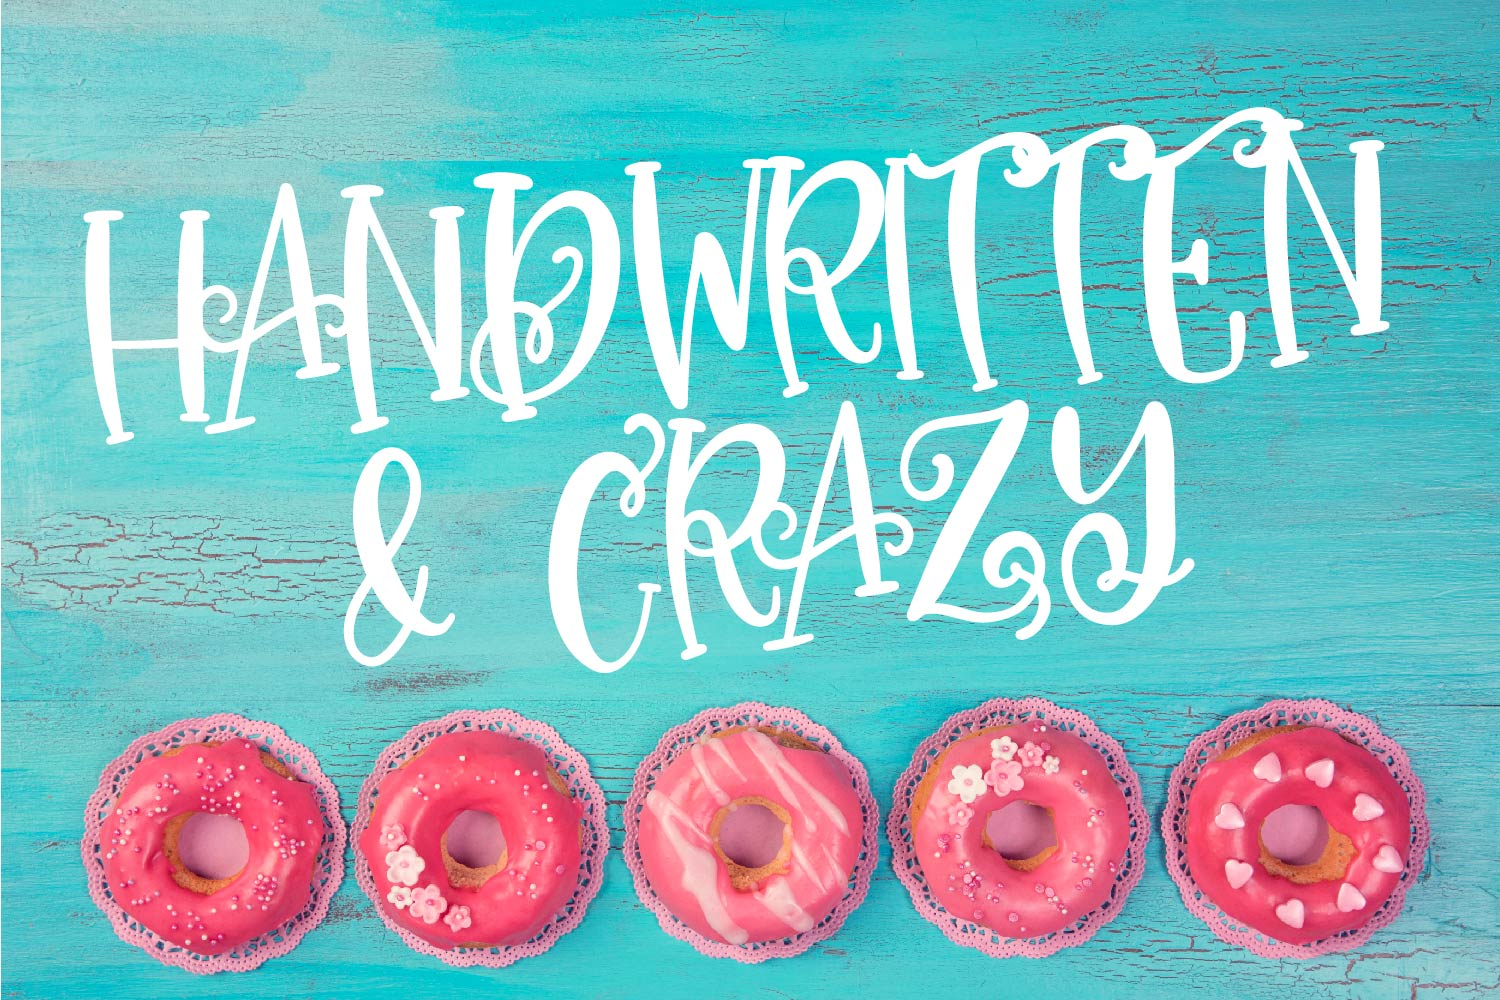 My Favorite Fonts - Crazy Good Deal! - 17 fonts! example image 4